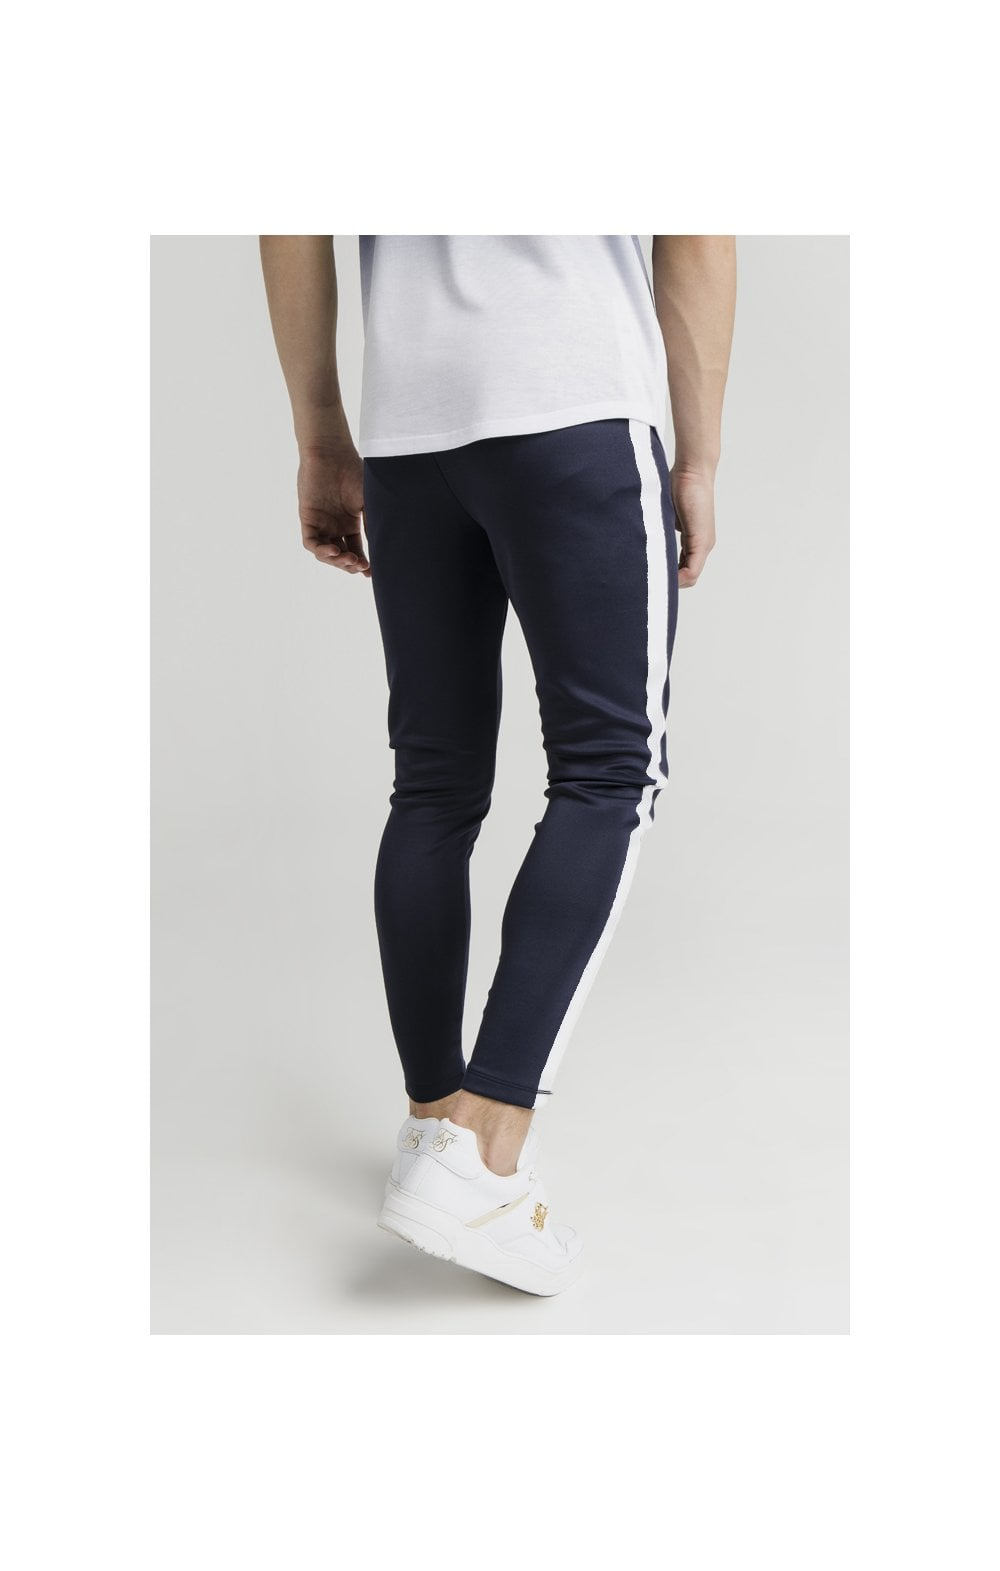 Load image into Gallery viewer, Illusive London Athlete Joggers - Navy & White (2)